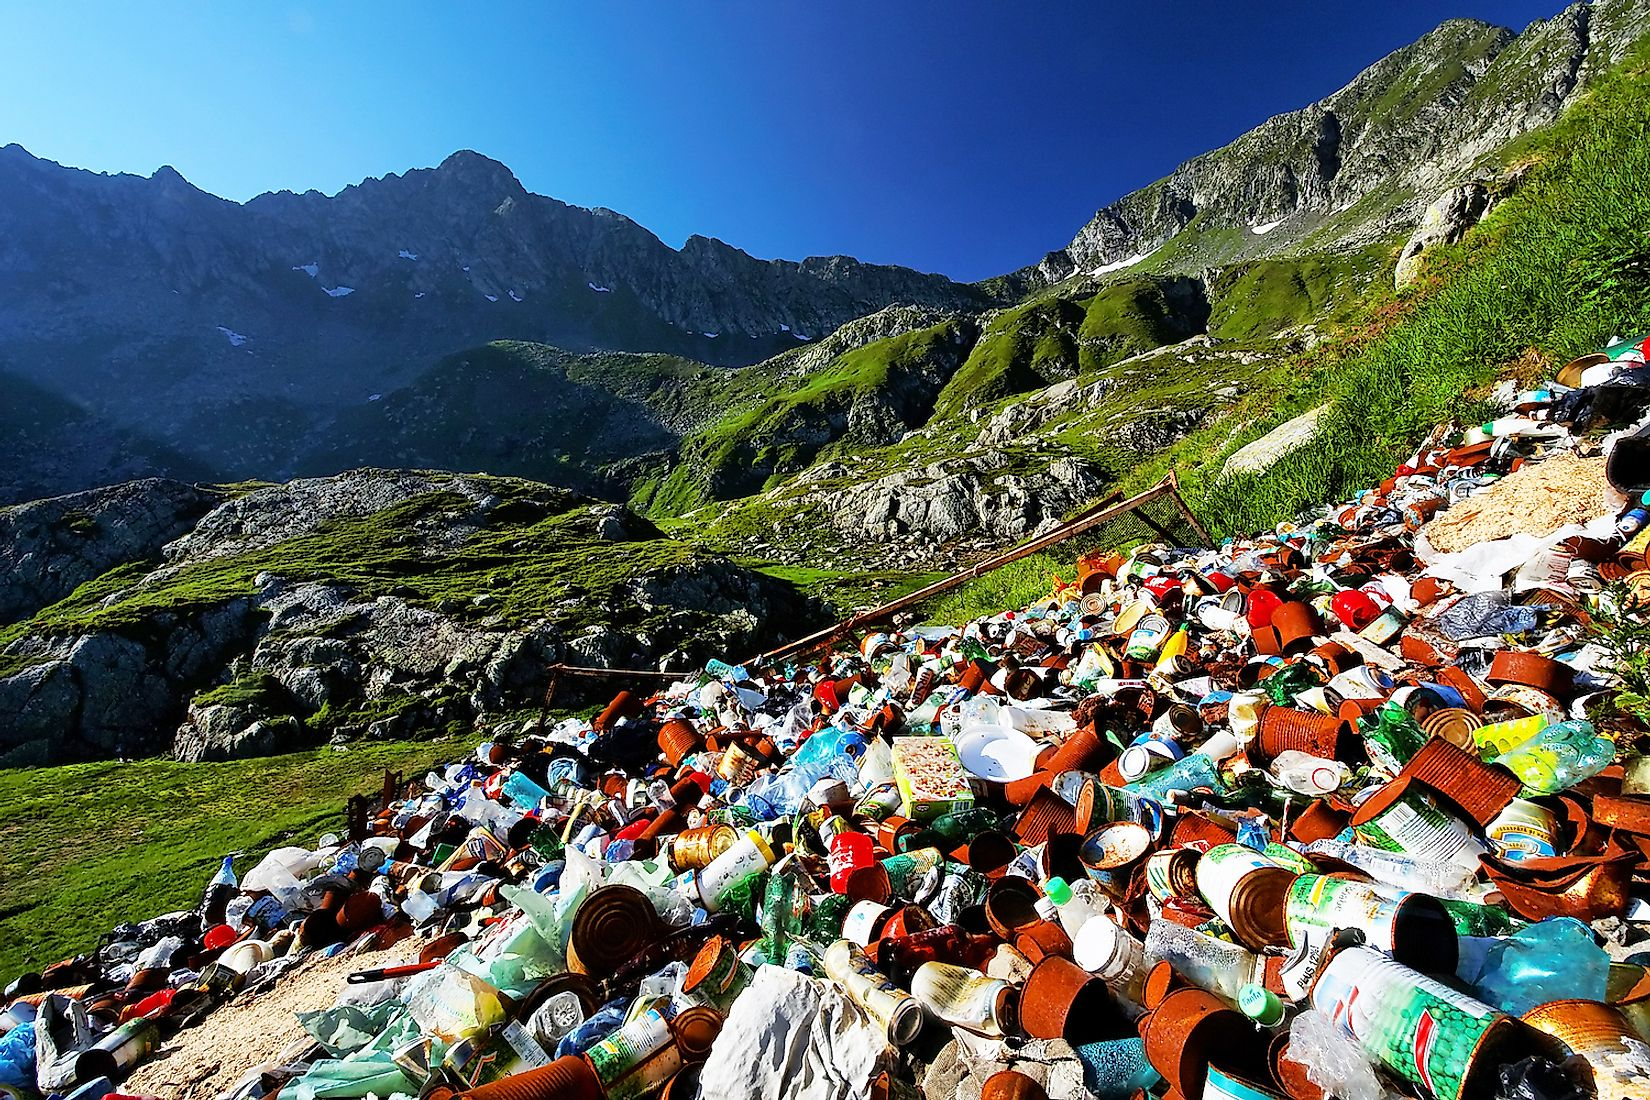 Waste left by tourists on mountains. Image credit: Mikadun/Shutterstock.com